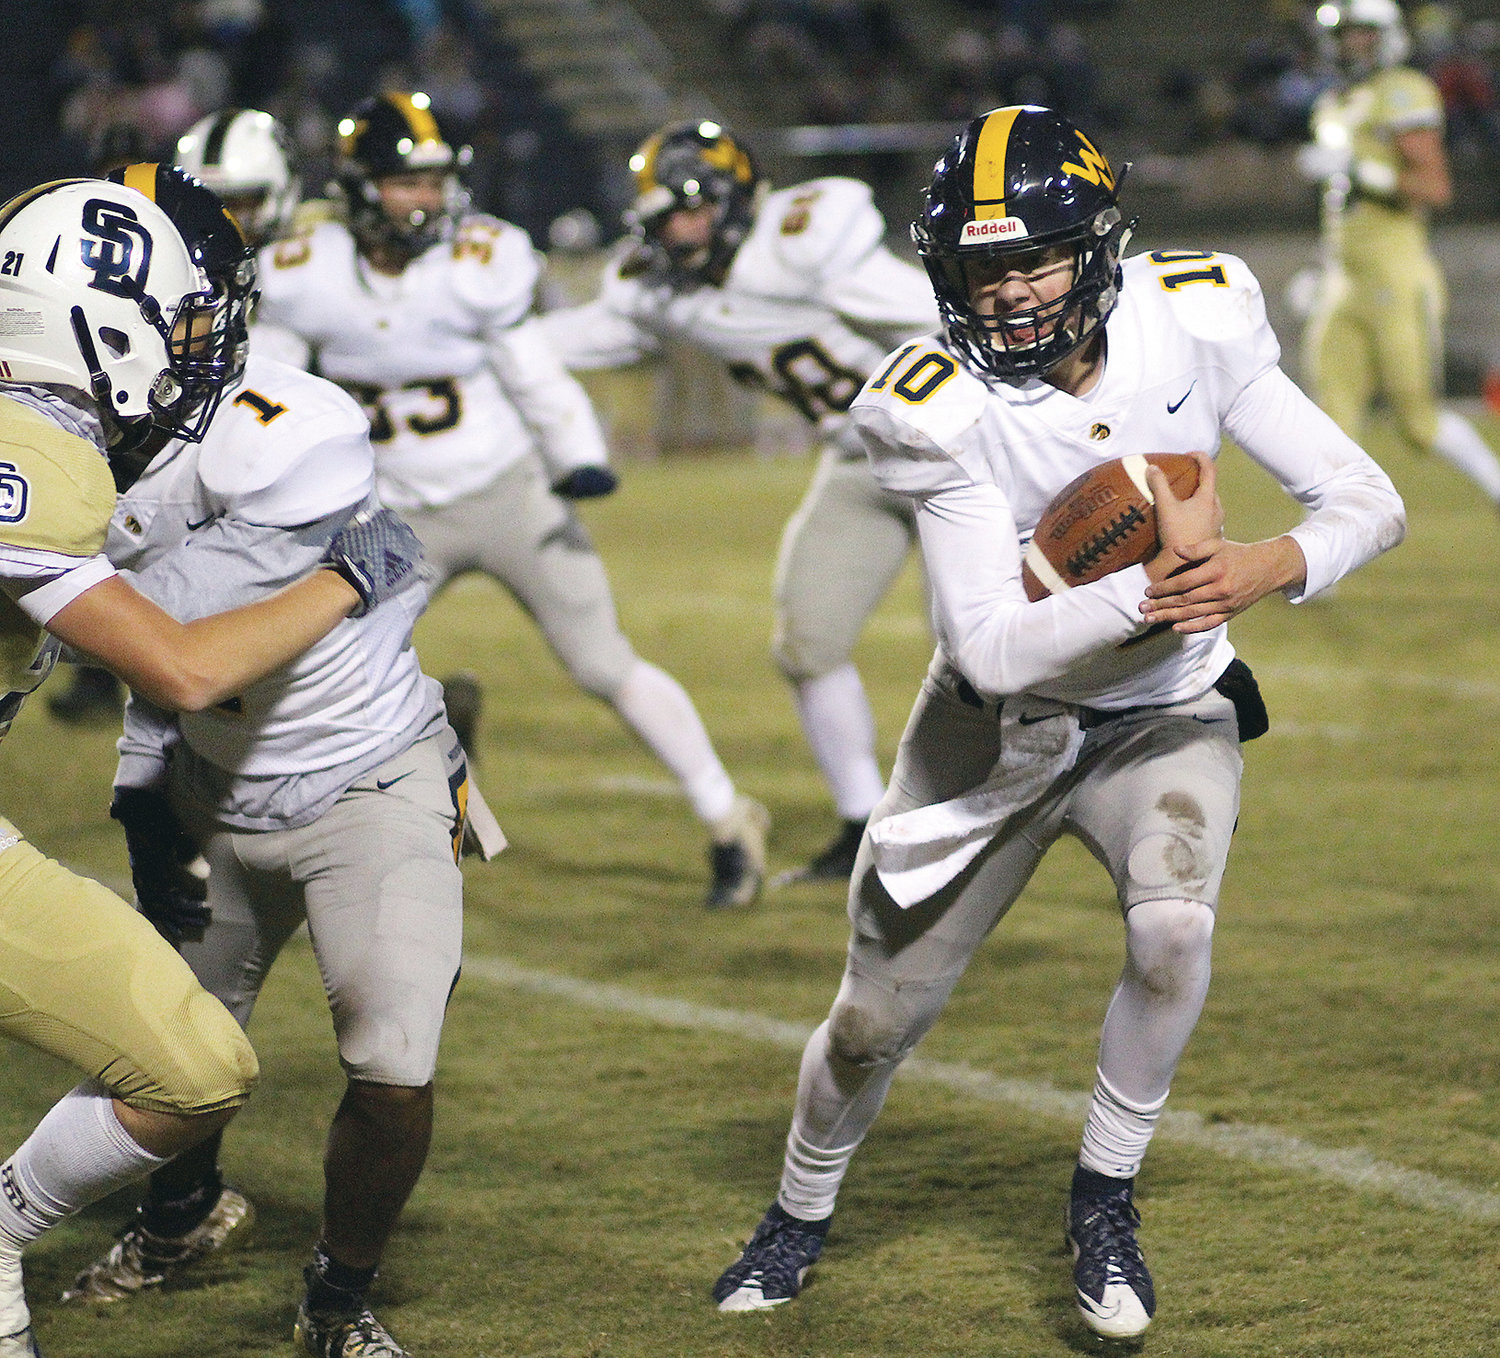 WALKER VALLEY quarterback Tyler Pope (10) looks to evade a tackle by a Soddy-Daisy defender. Pope will lead the Mustangs Friday night as they face Knoxville West in the first round of the TSSAA football playoffs.